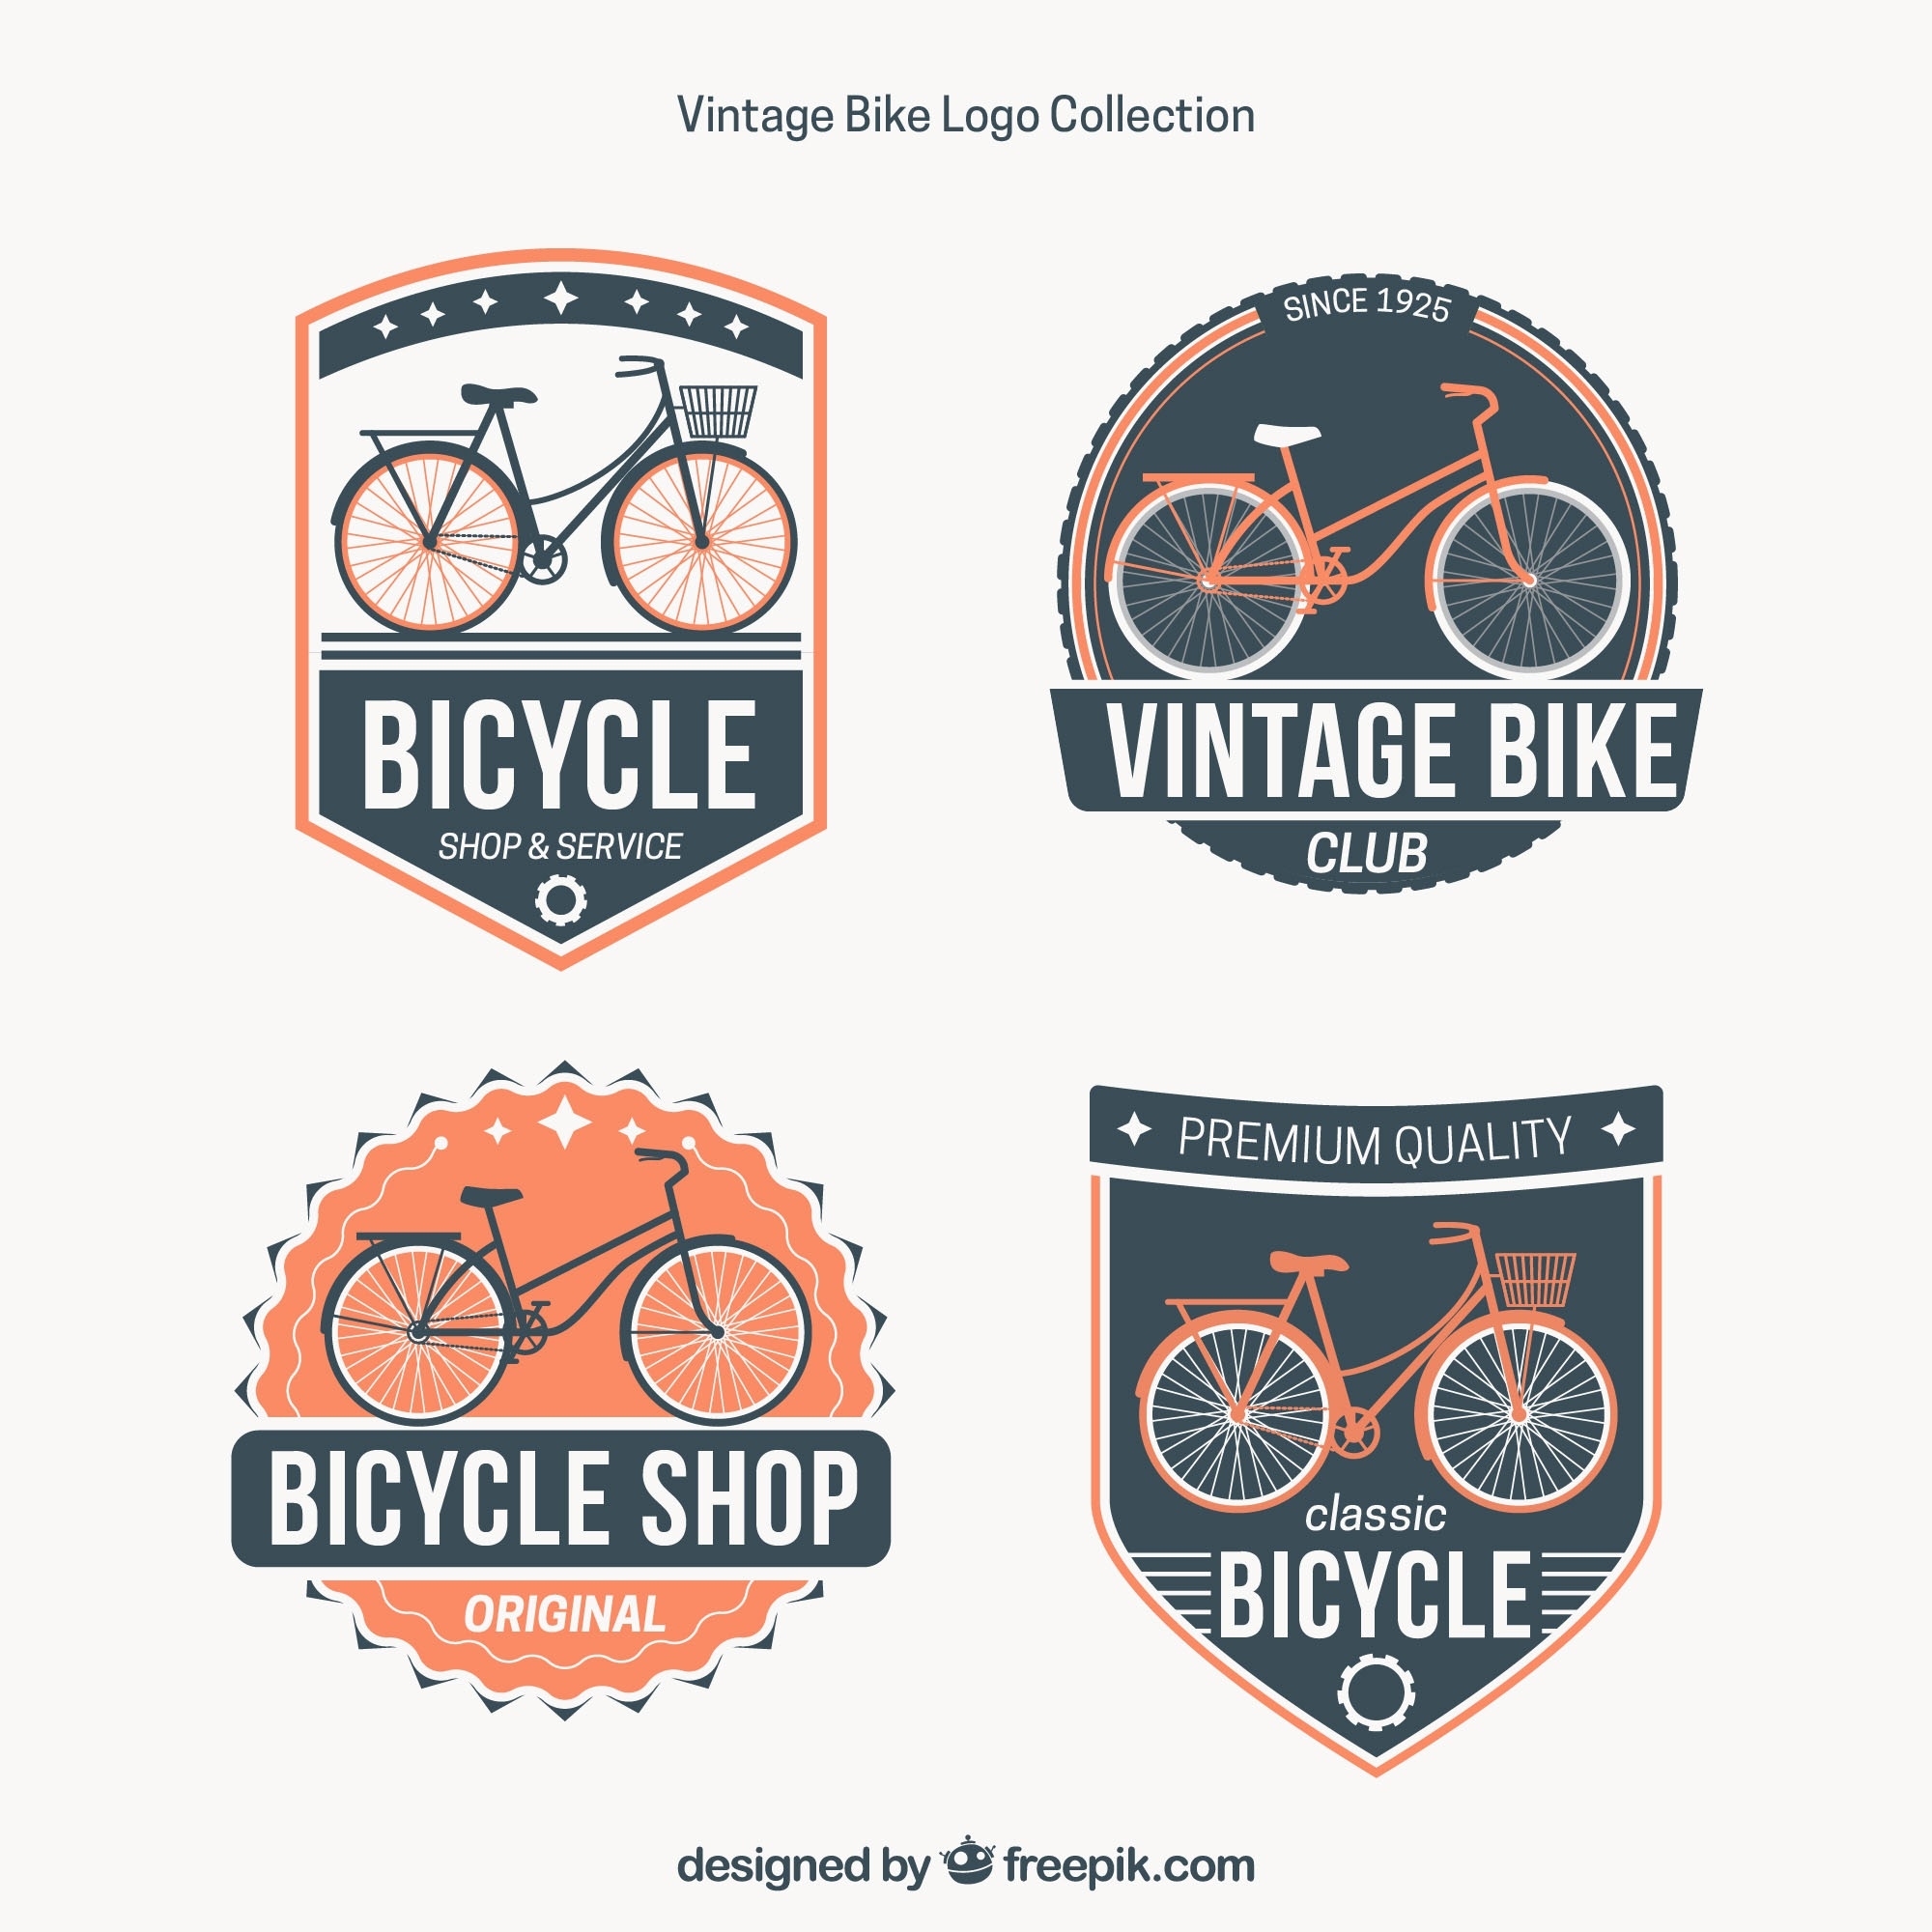 Vintage bike logos with badge style